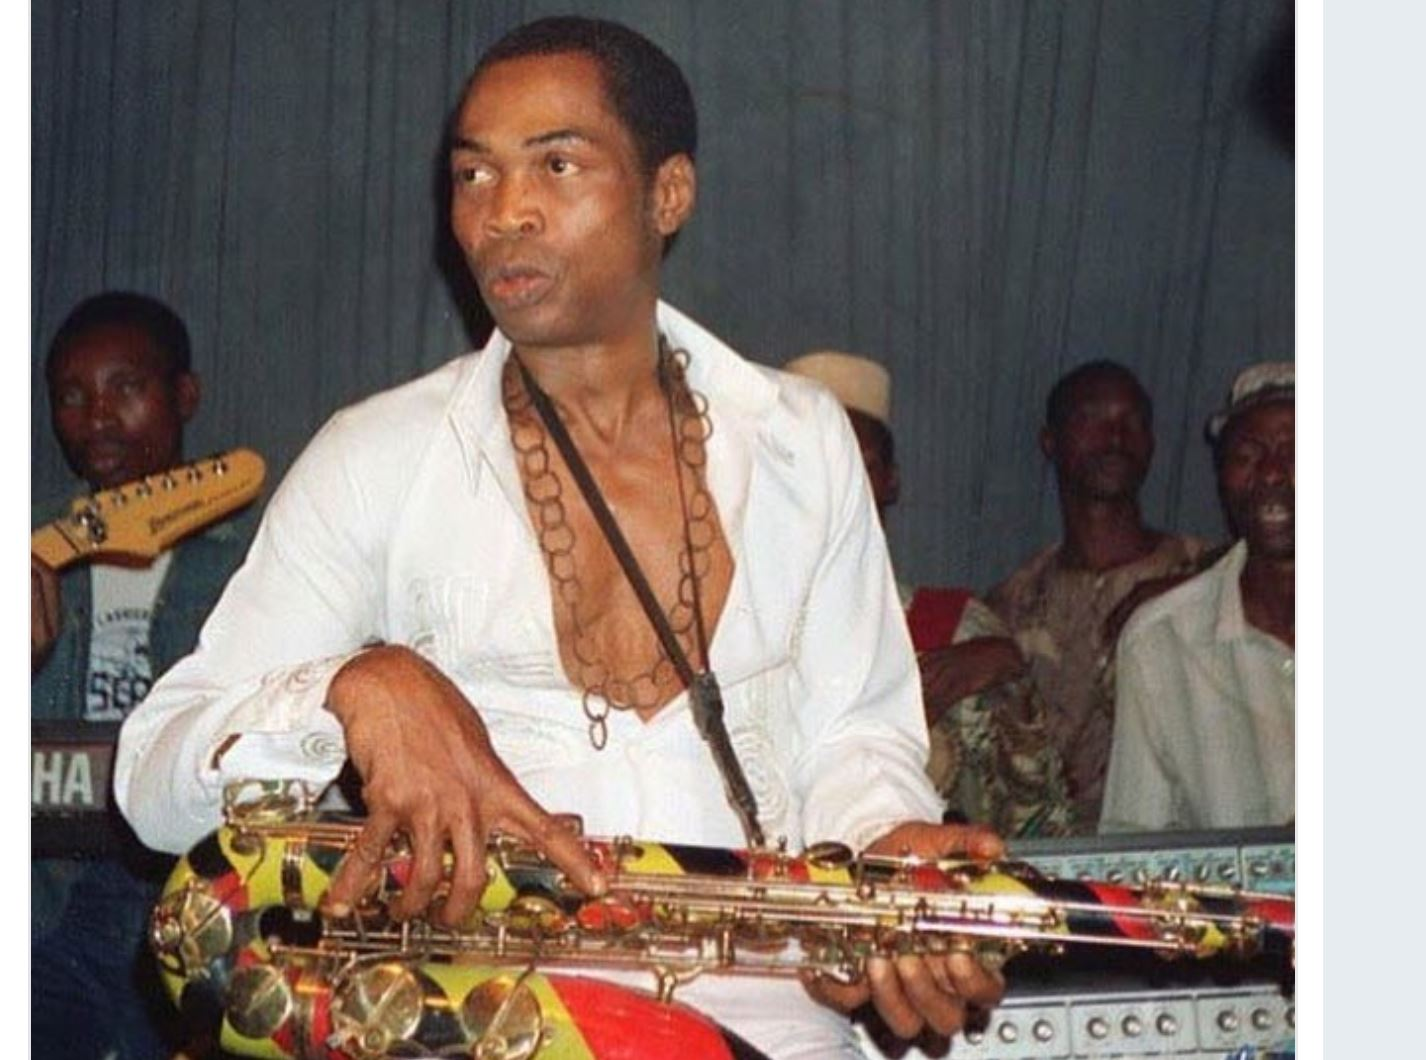 Fela Kuti His Music Lives On Nigerians Music Enthusiasts Remember